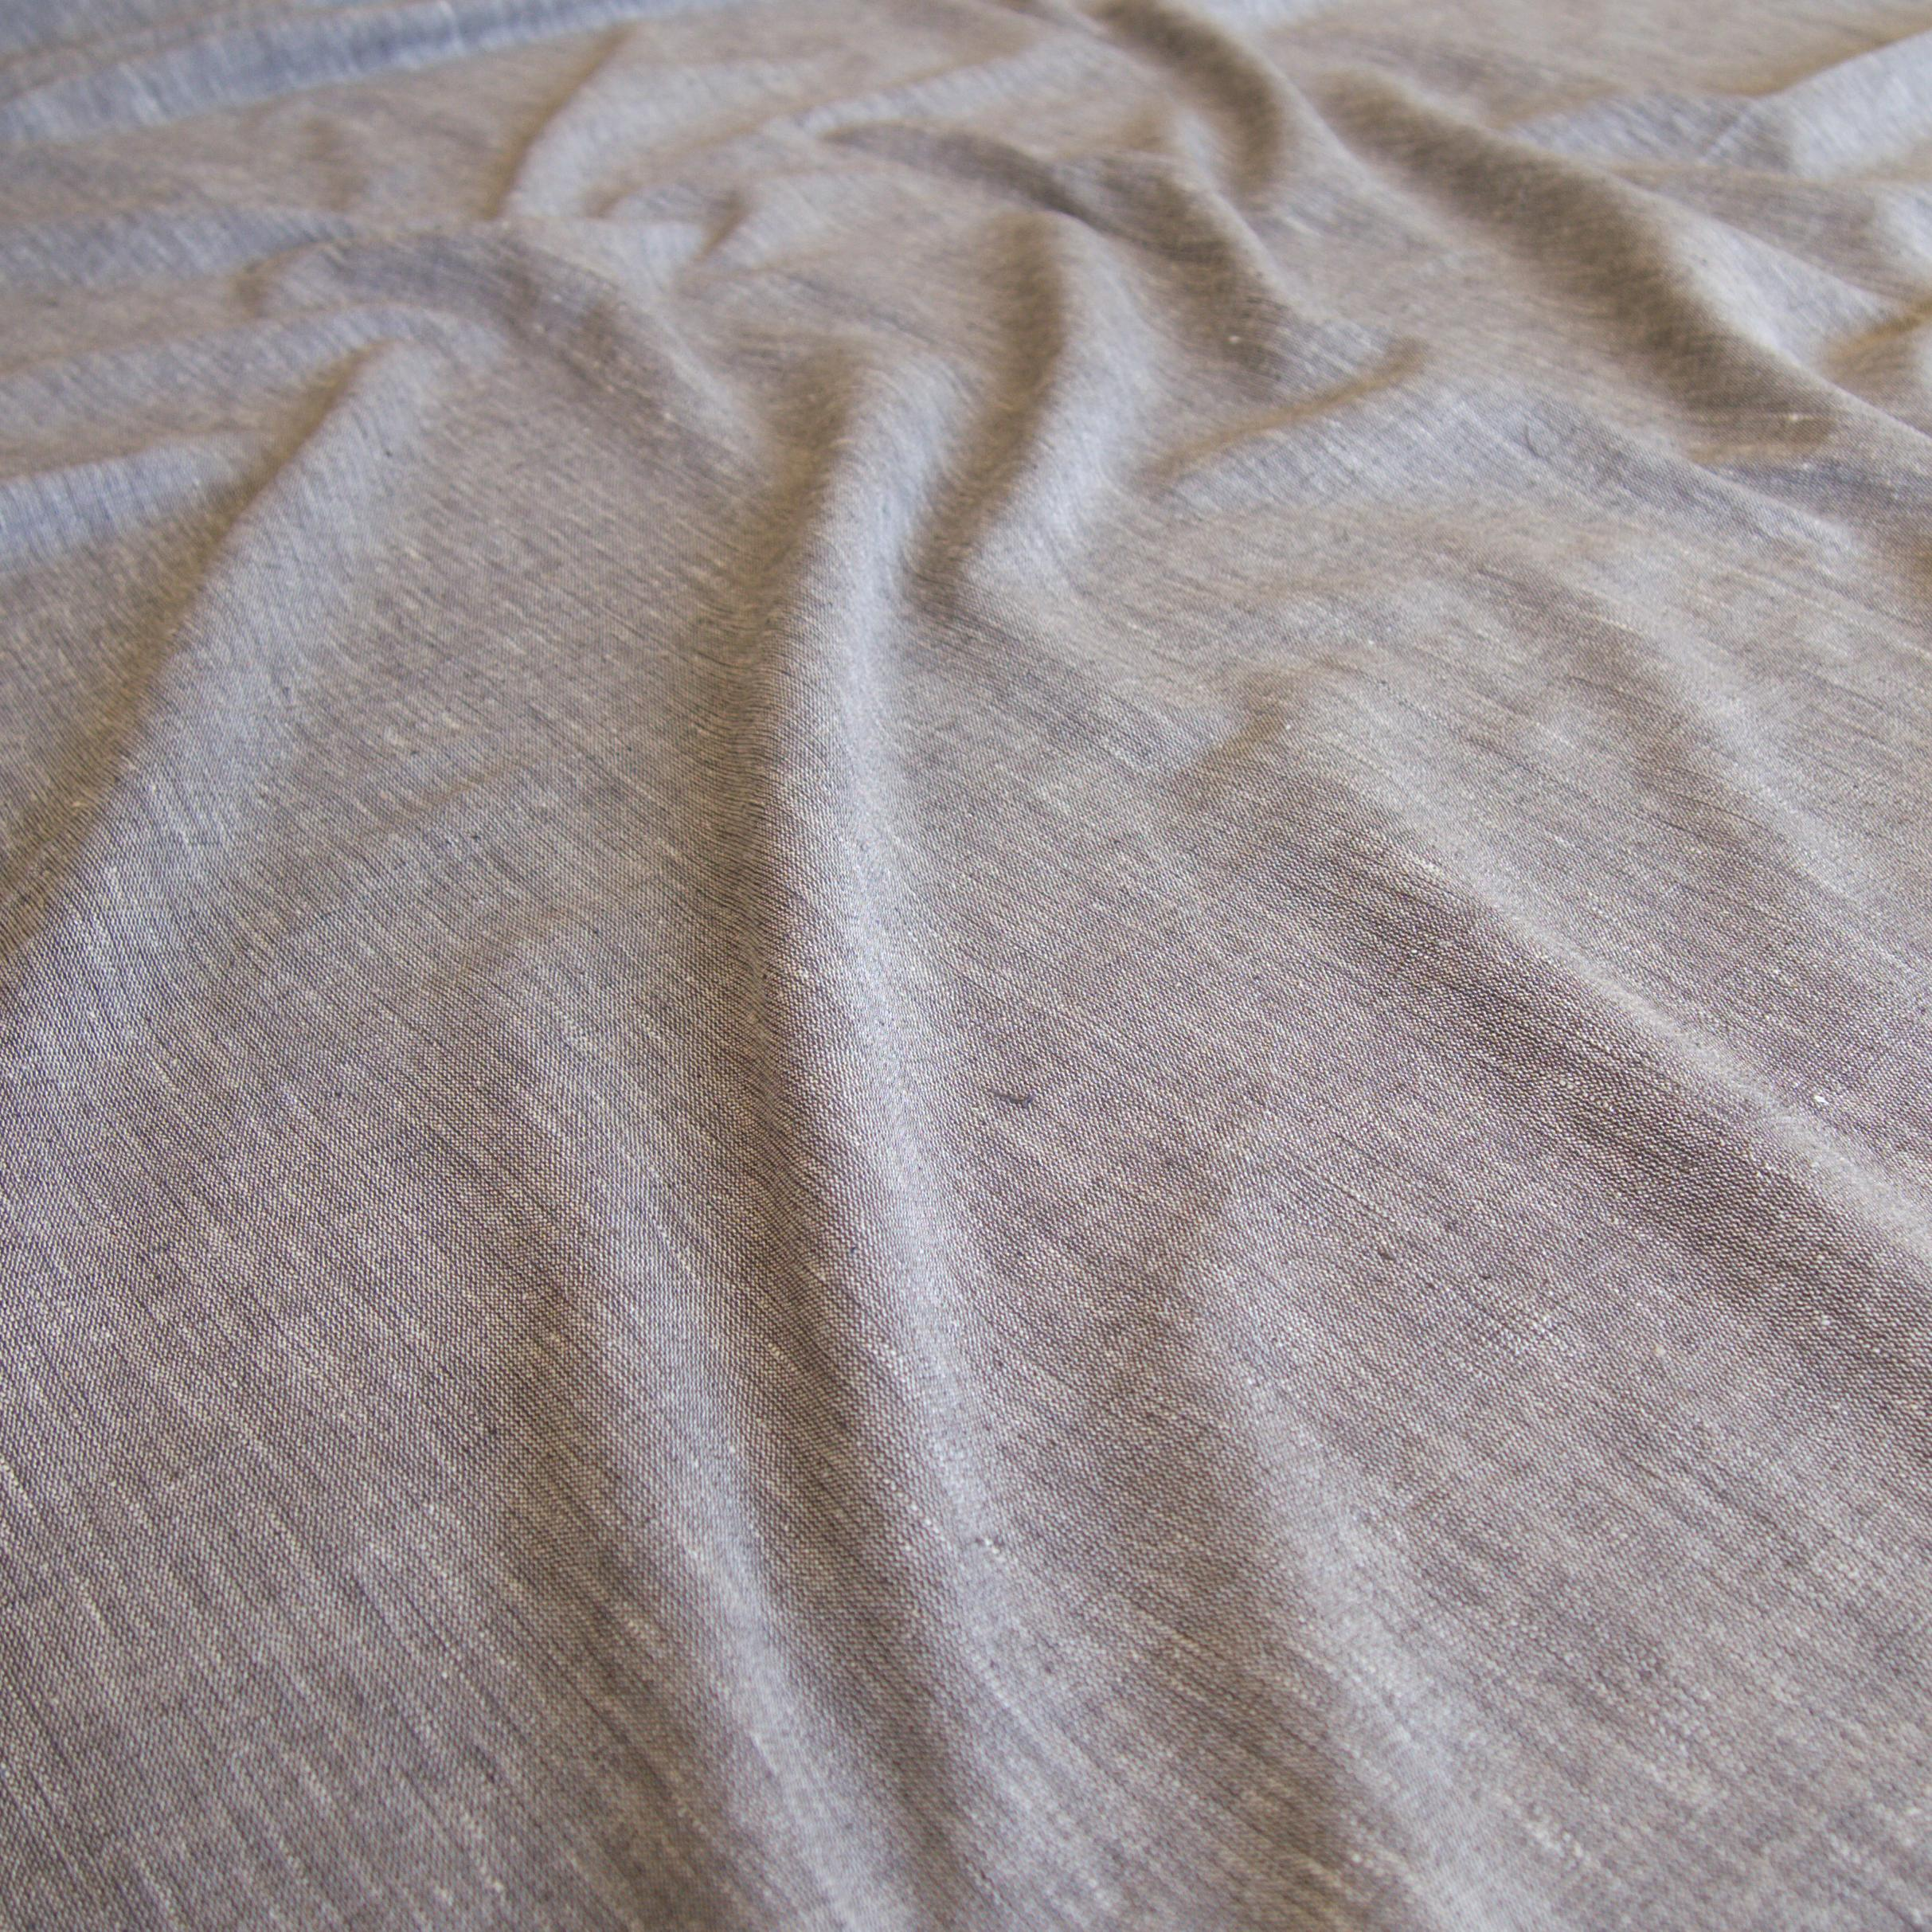 Organic Kala Cotton - Handloom Woven - Natural Dye - Charcoal Black - Shot Cotton - One By One - Contrast